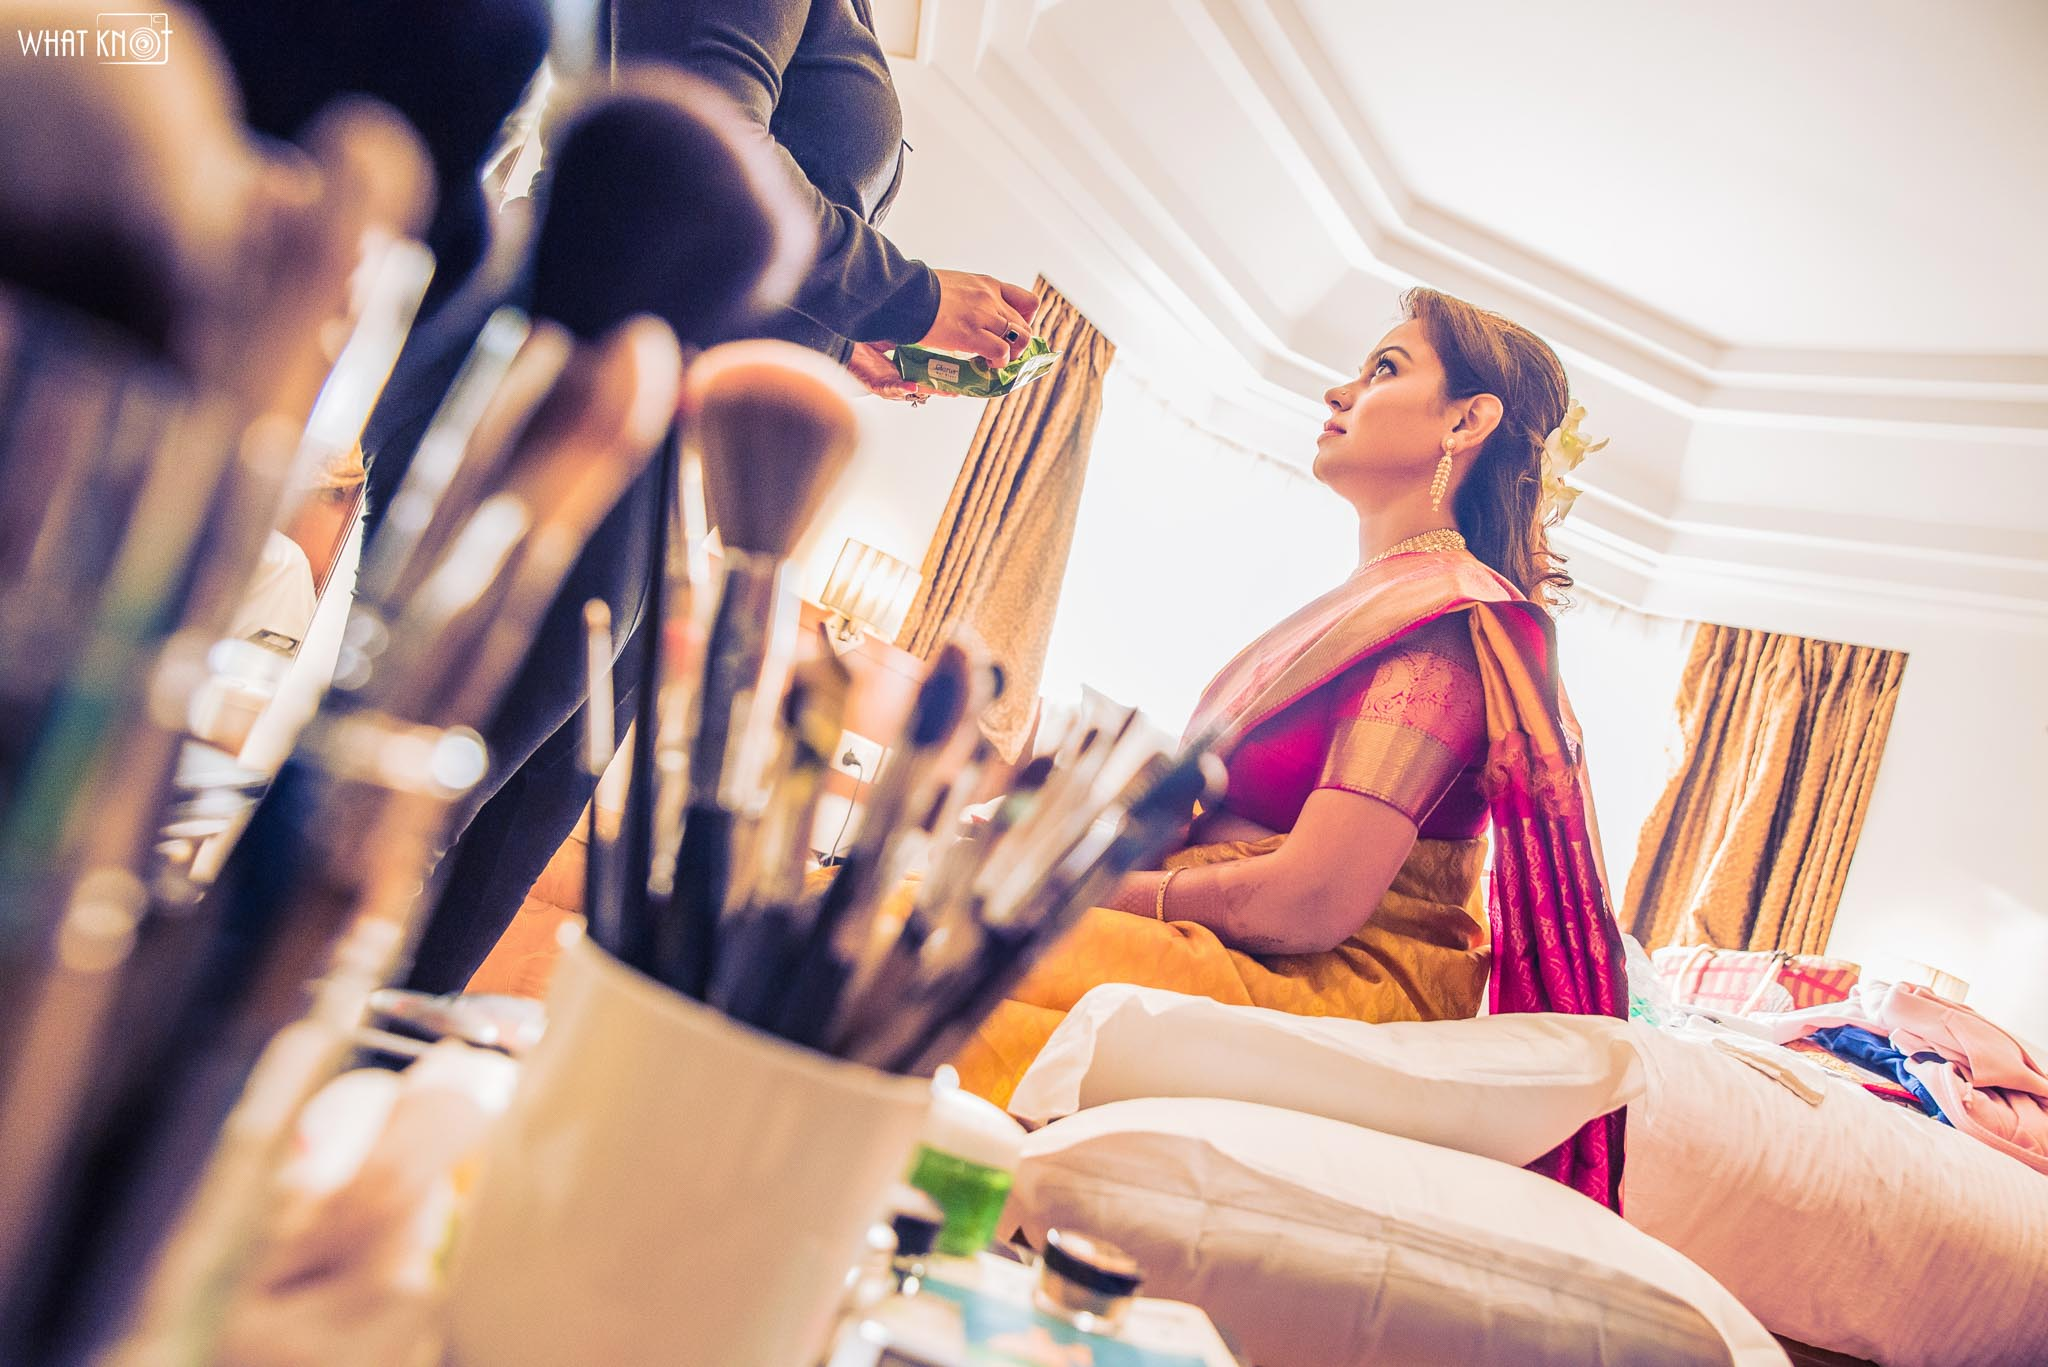 Candid-Wedding-Photography-WhatKnot-Marathi-68 copy